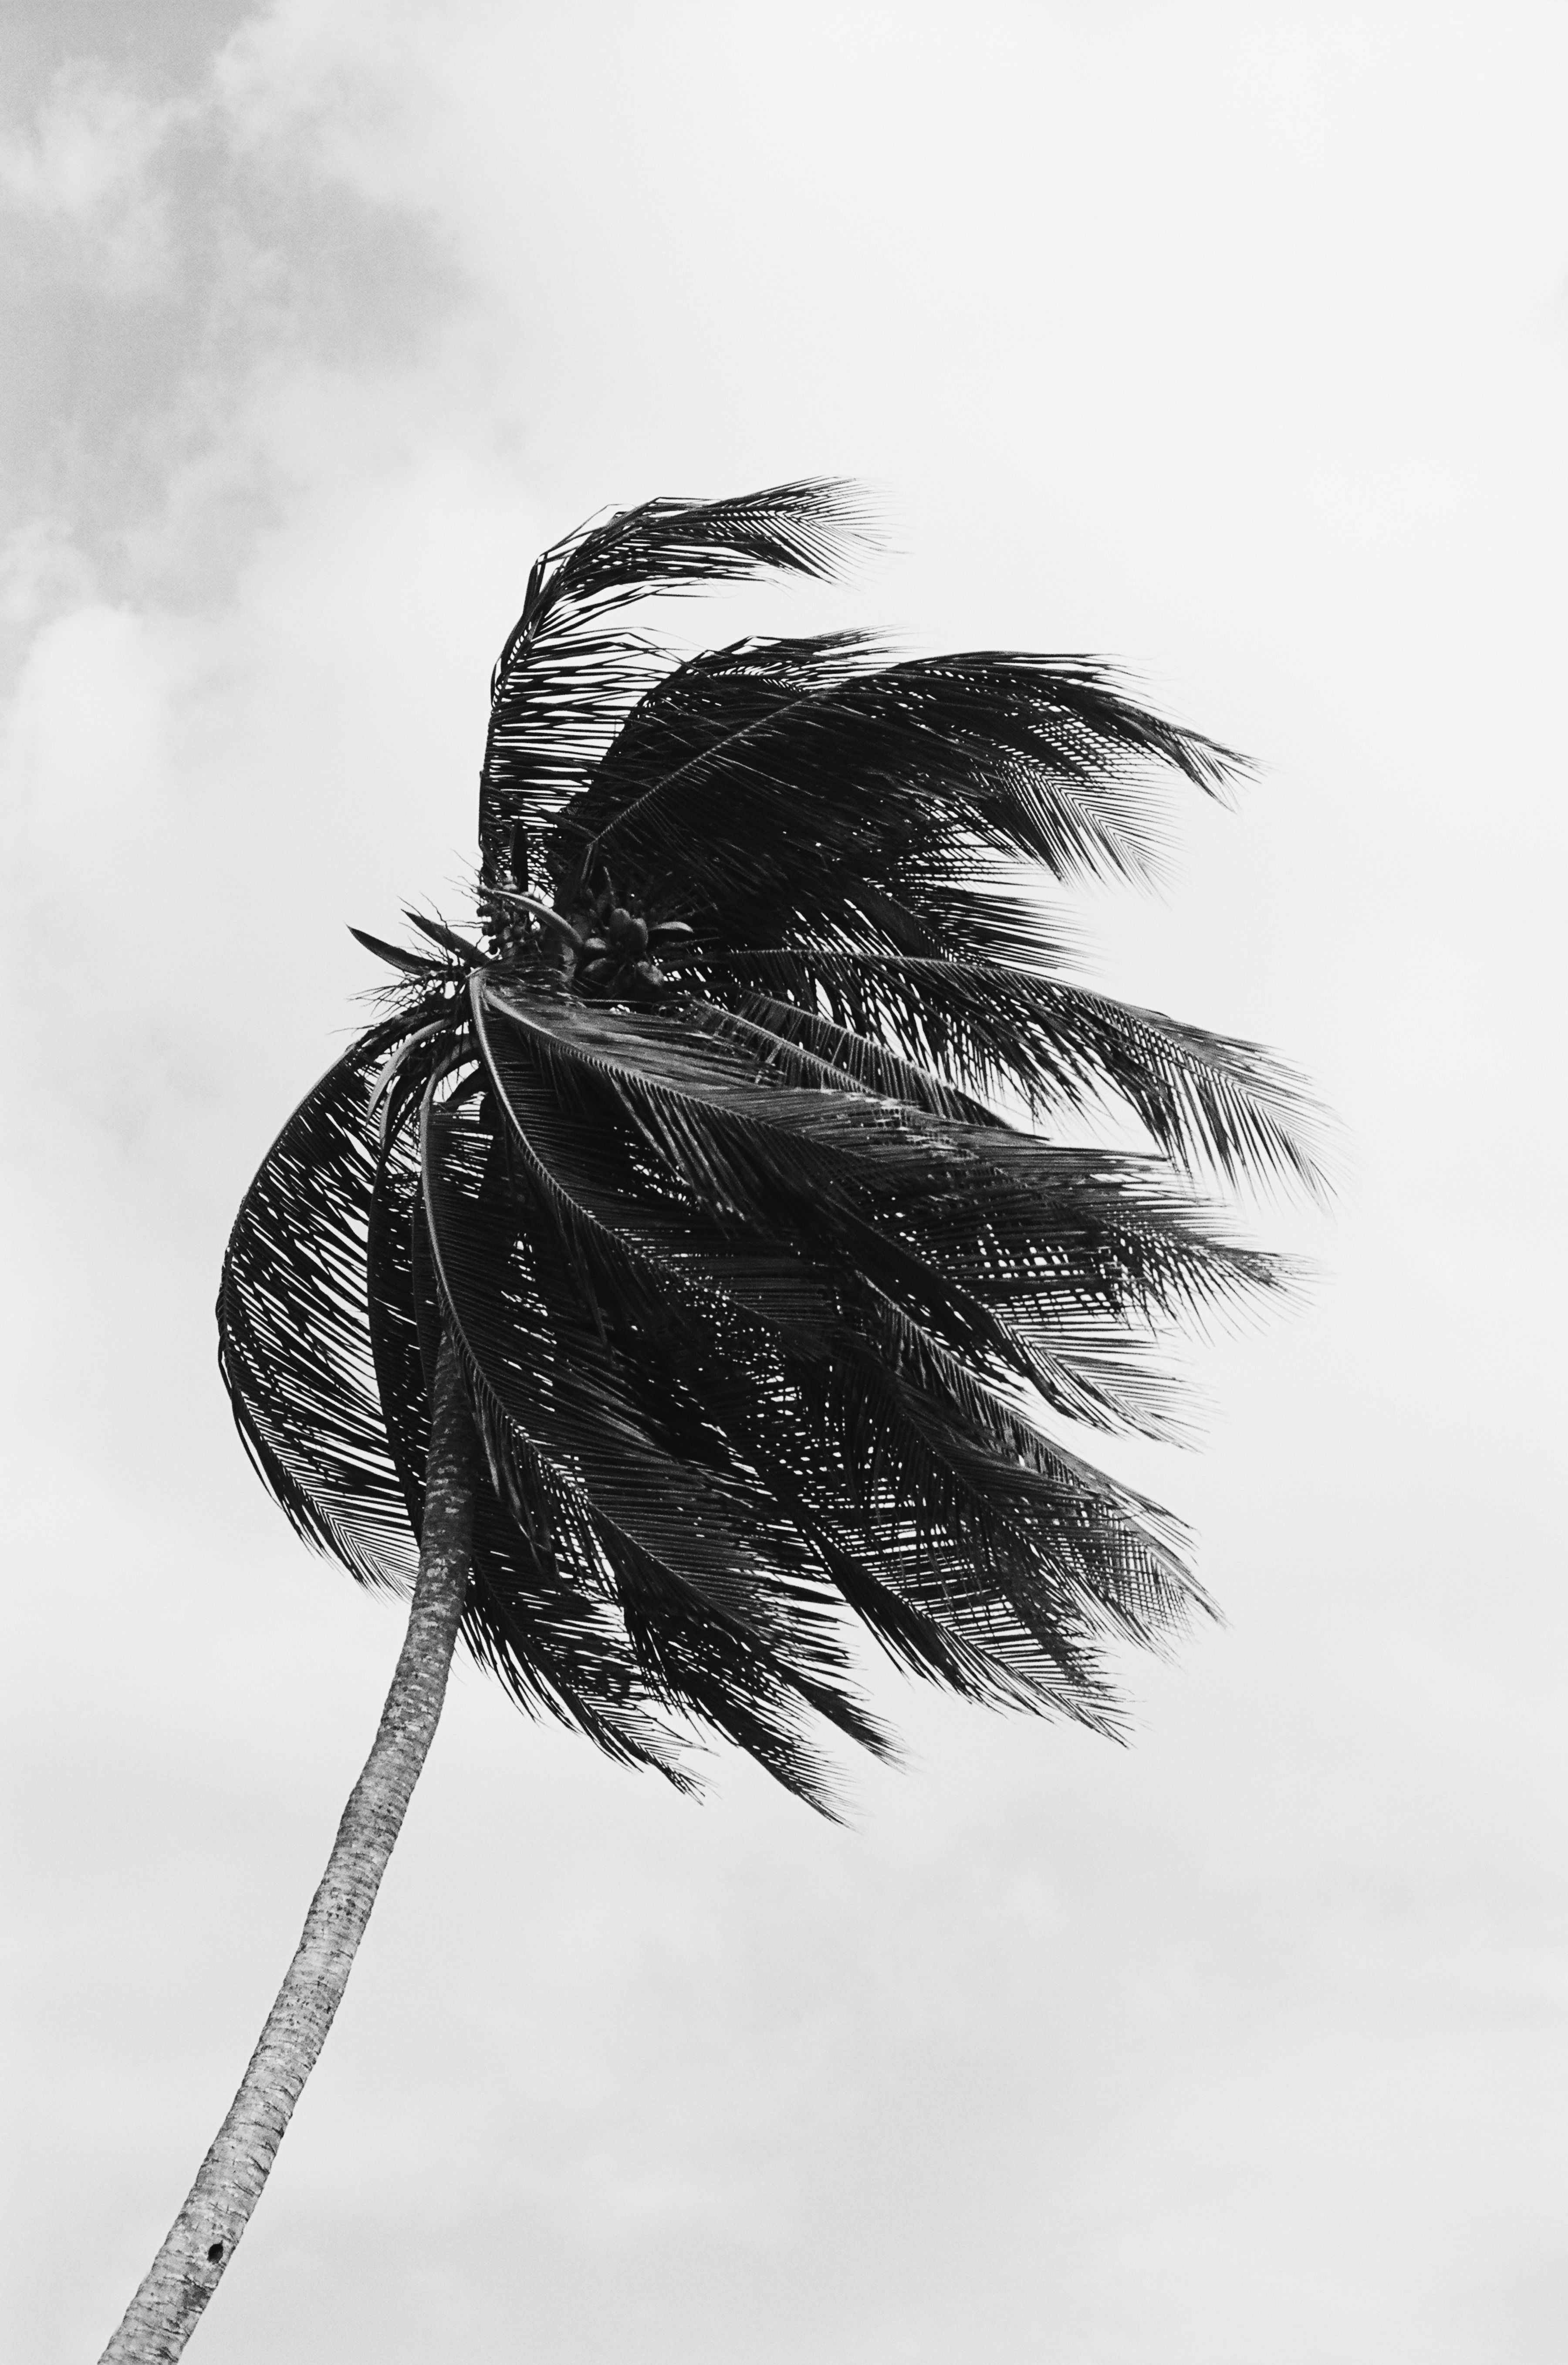 Hedviggen On Pinterest Inspiries Black And White Photography Summer Palmt Black And White Aesthetic White Photography Black And White Photography